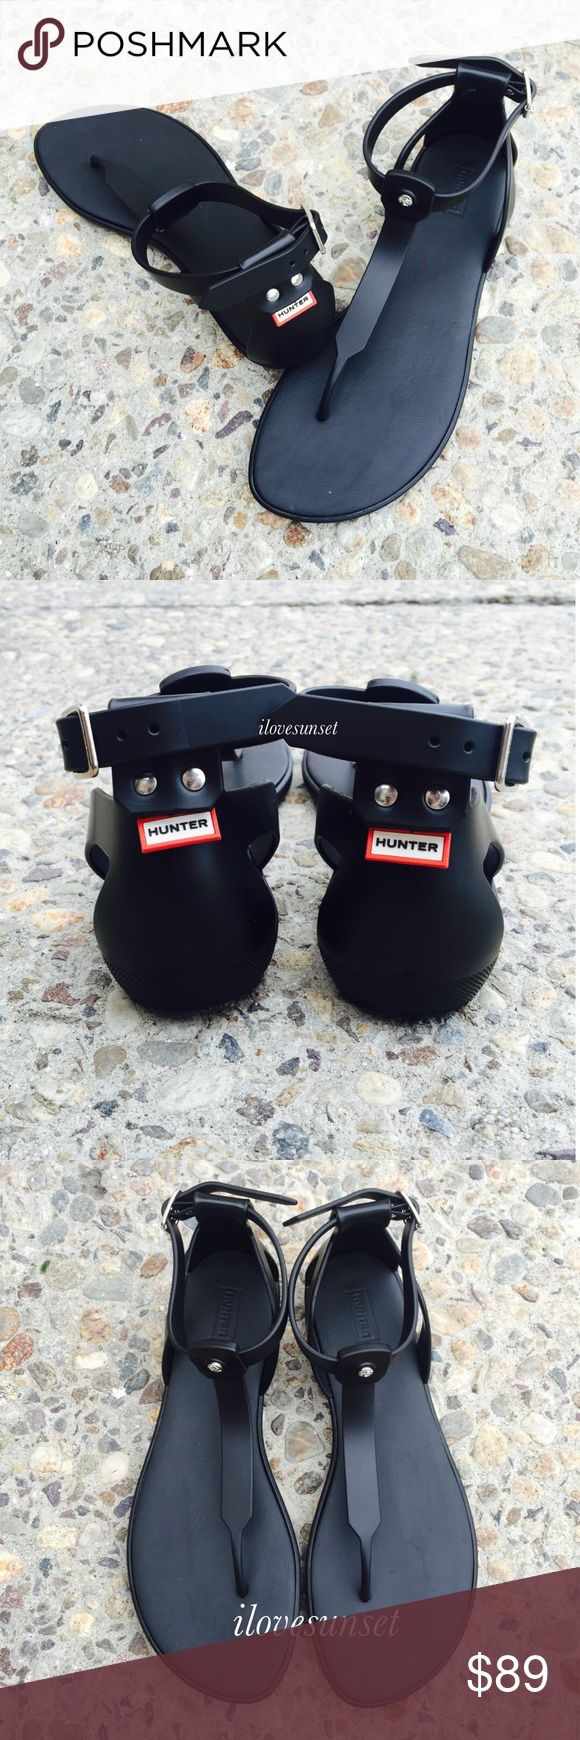 ✨✨{Hunters Boots} Black Thong Rubber Sandals Super cute, sold out everywhere. Brand new, never been worn. Size 9 US, 7 UK, MADE IN ITALY. Price is firm.   ❌ NO TRADES - SELLING ON POSH ONLY ❌ ❌ NO LOWBALLING ❌  ✅ Bundle Discounts ✅ Ship Next Day of Purchase   % AUTHENTIC Hunter Boots Shoes Sandals